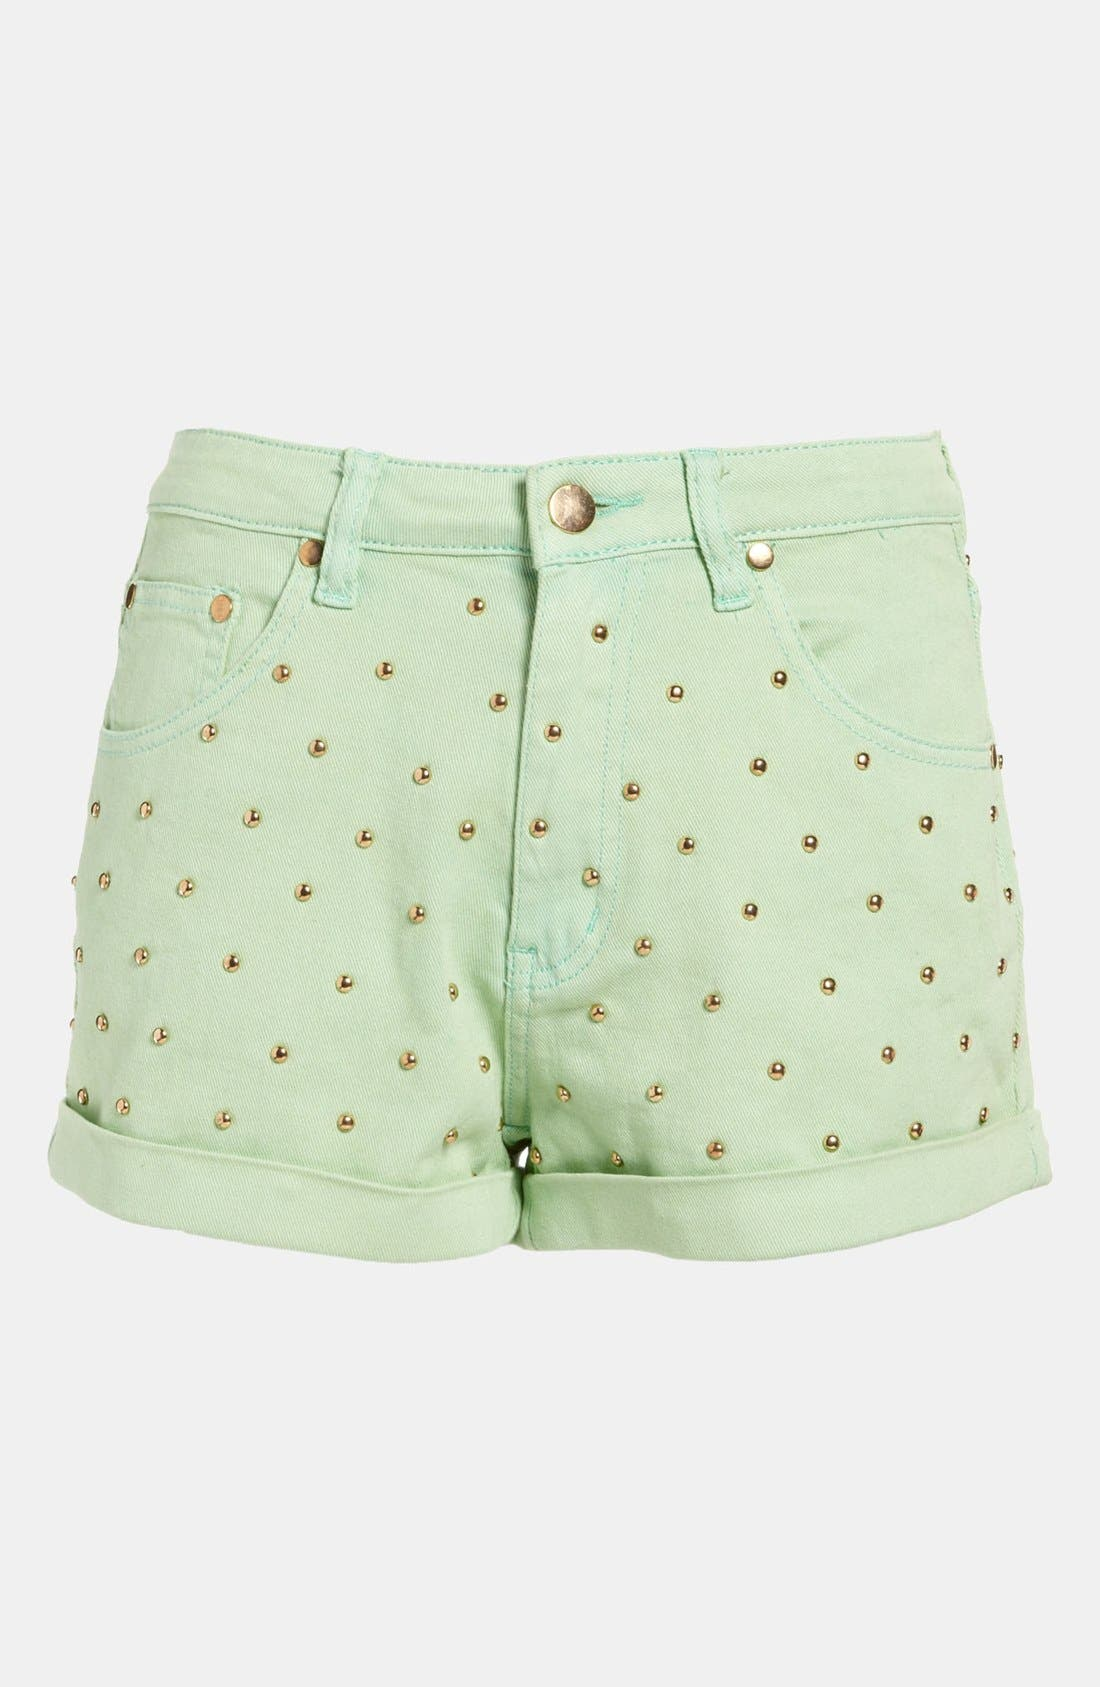 Main Image - MINKPINK 'Cheeky Stud' High Waist Shorts